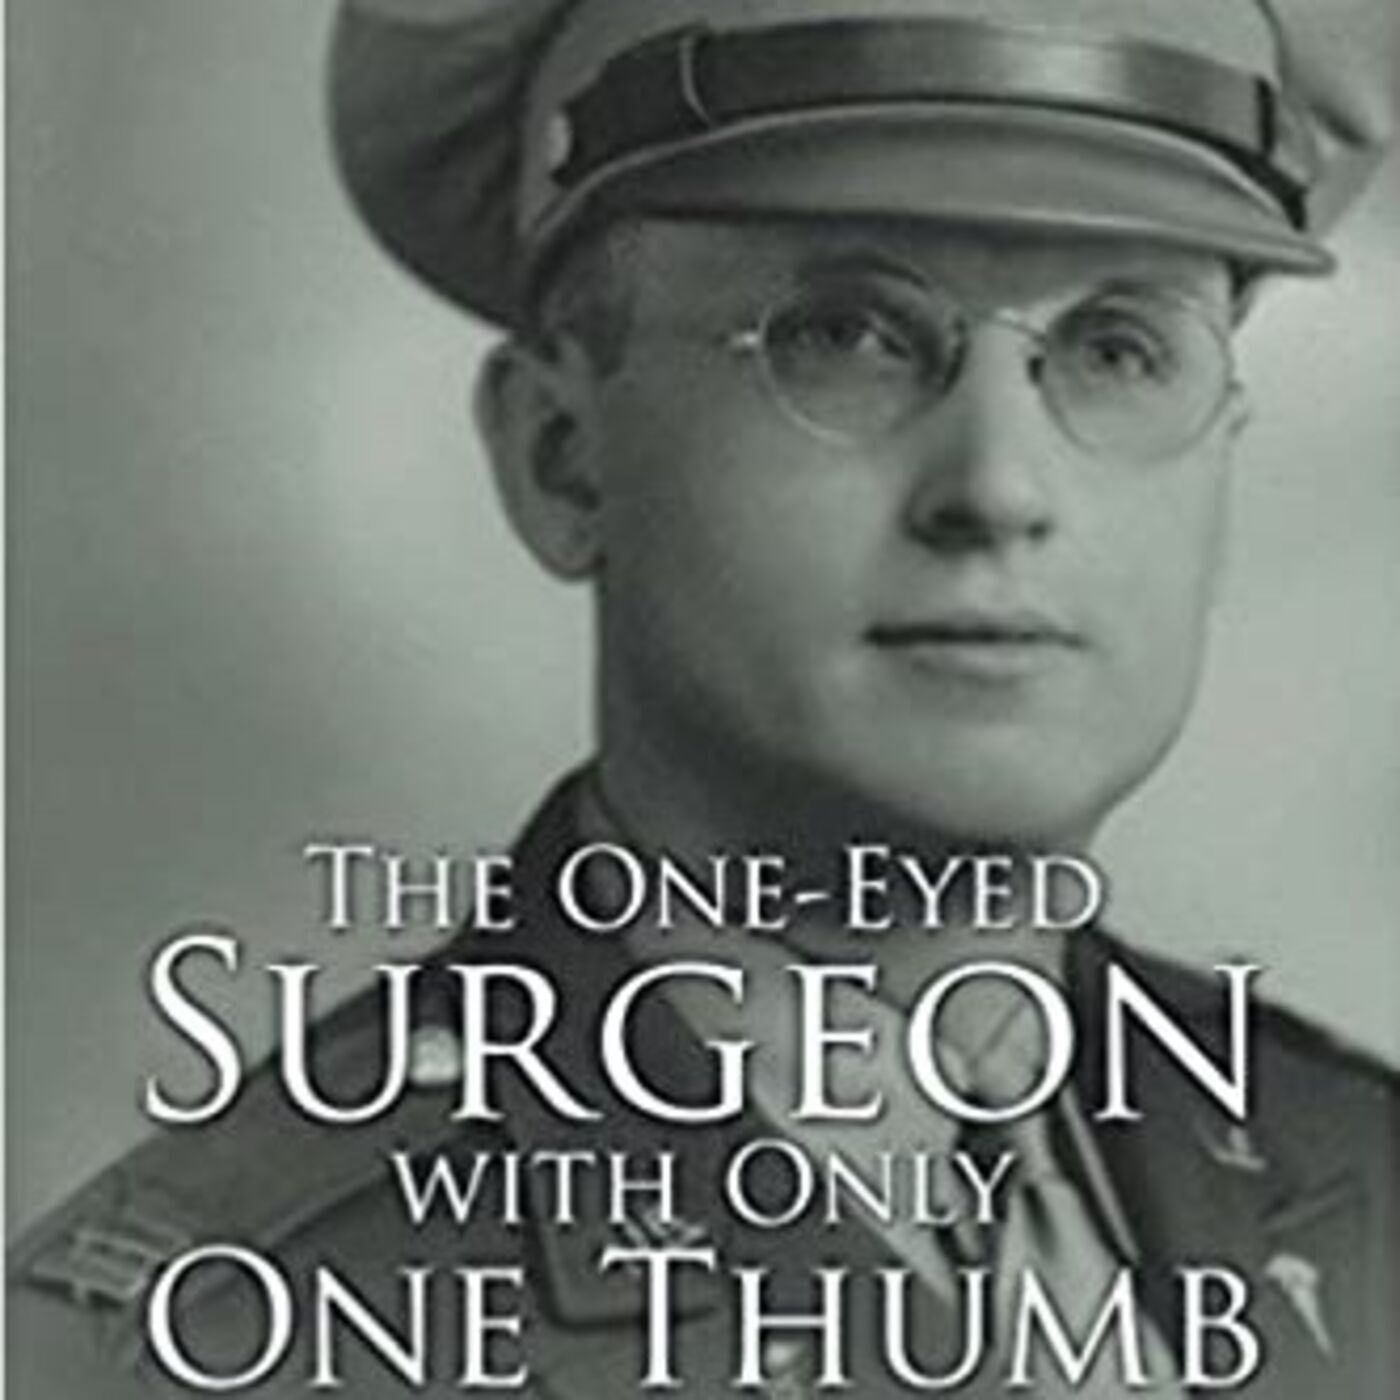 Ep. 010: The One-Eyed Surgeon With Only One Thumb and Other Stories - with John C. Barber, MD